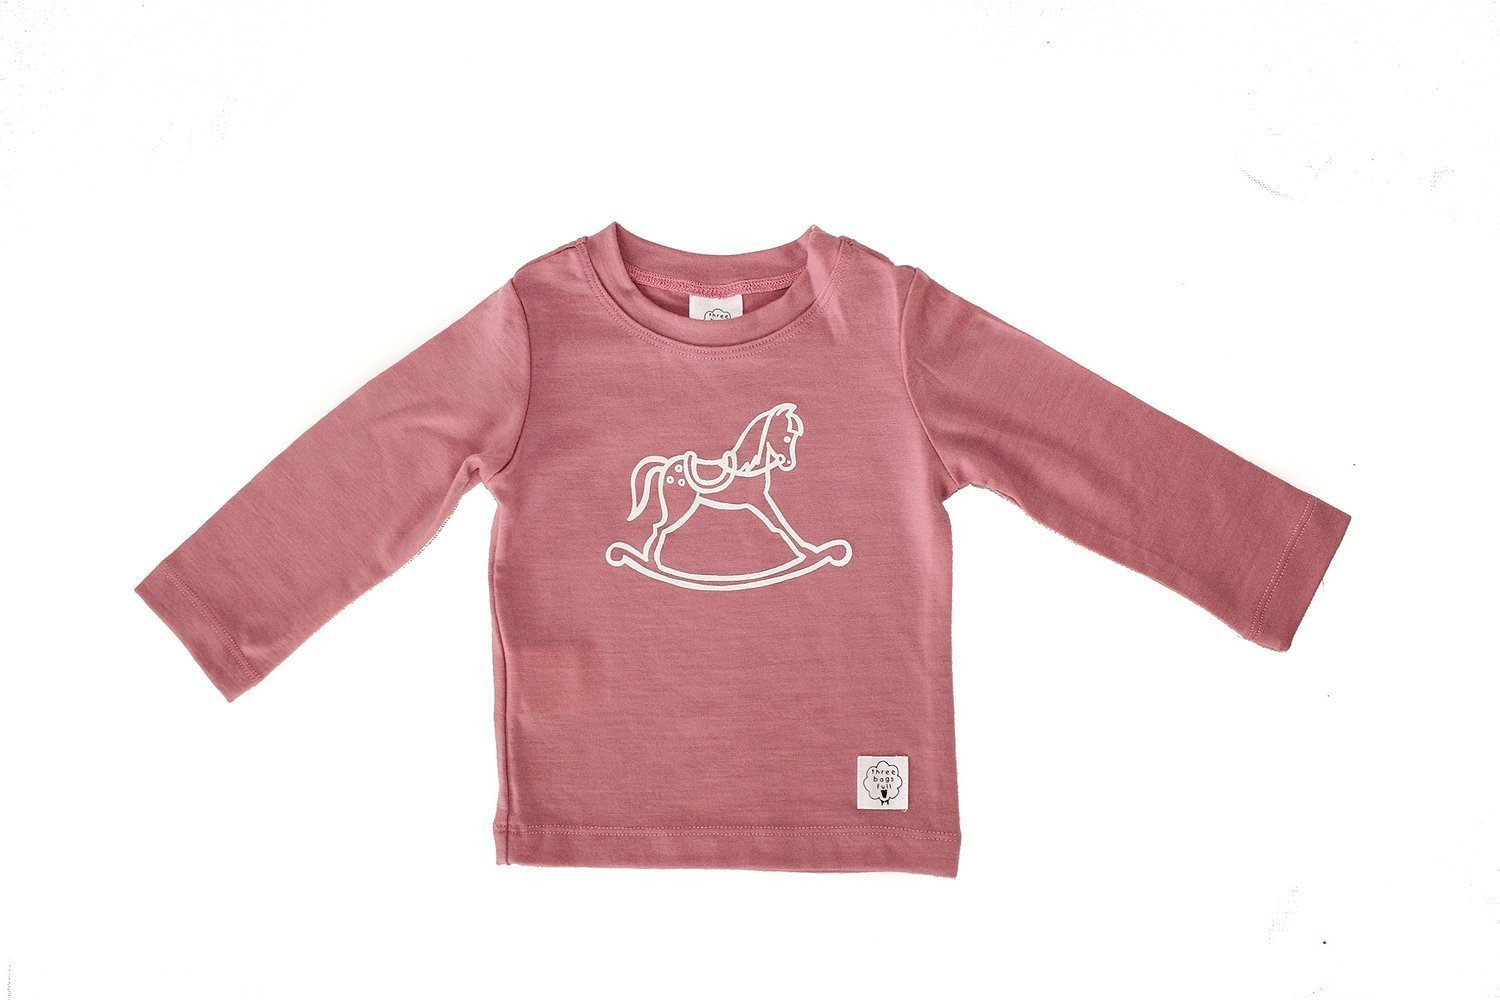 Three Bags Full Baby Rocking Horse Shirt - Naked Baby Eco Boutique - New Zealand Eco Friendly Organic Baby Products